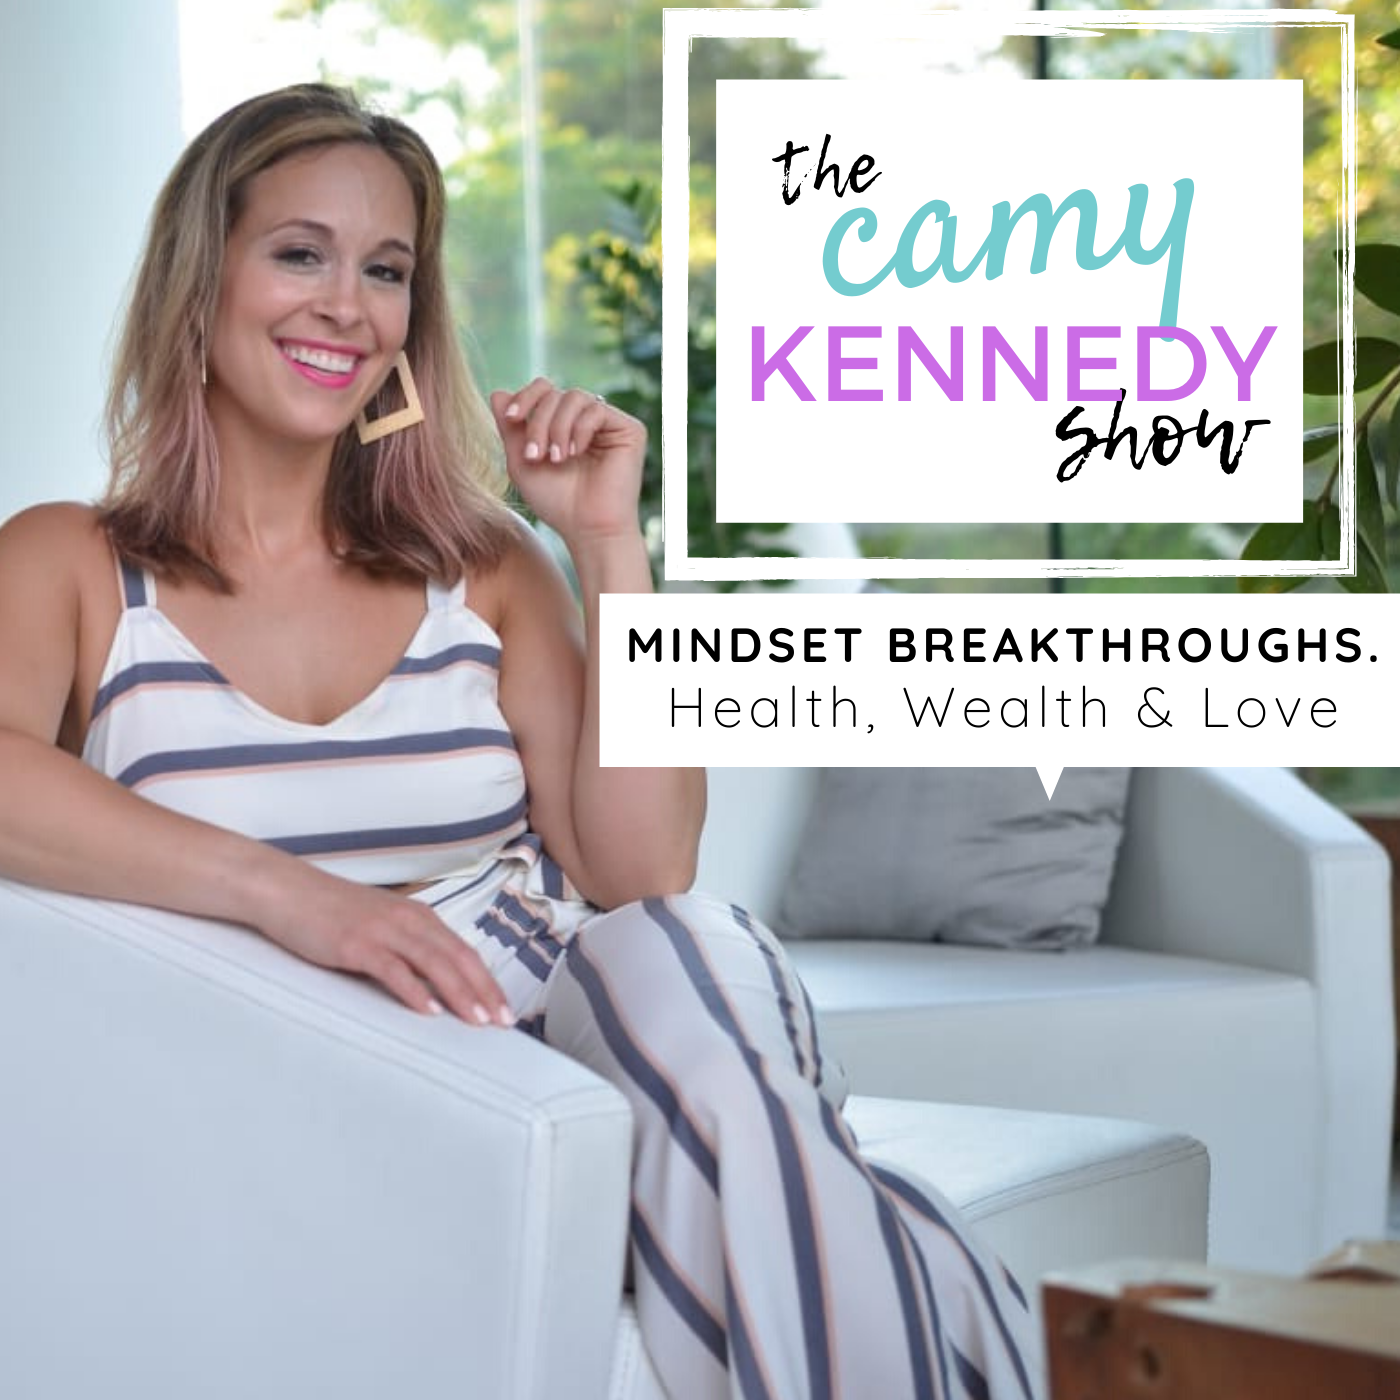 Camy Kennedy Show | Mindset Breakthroughs in Health, Wealth & Love